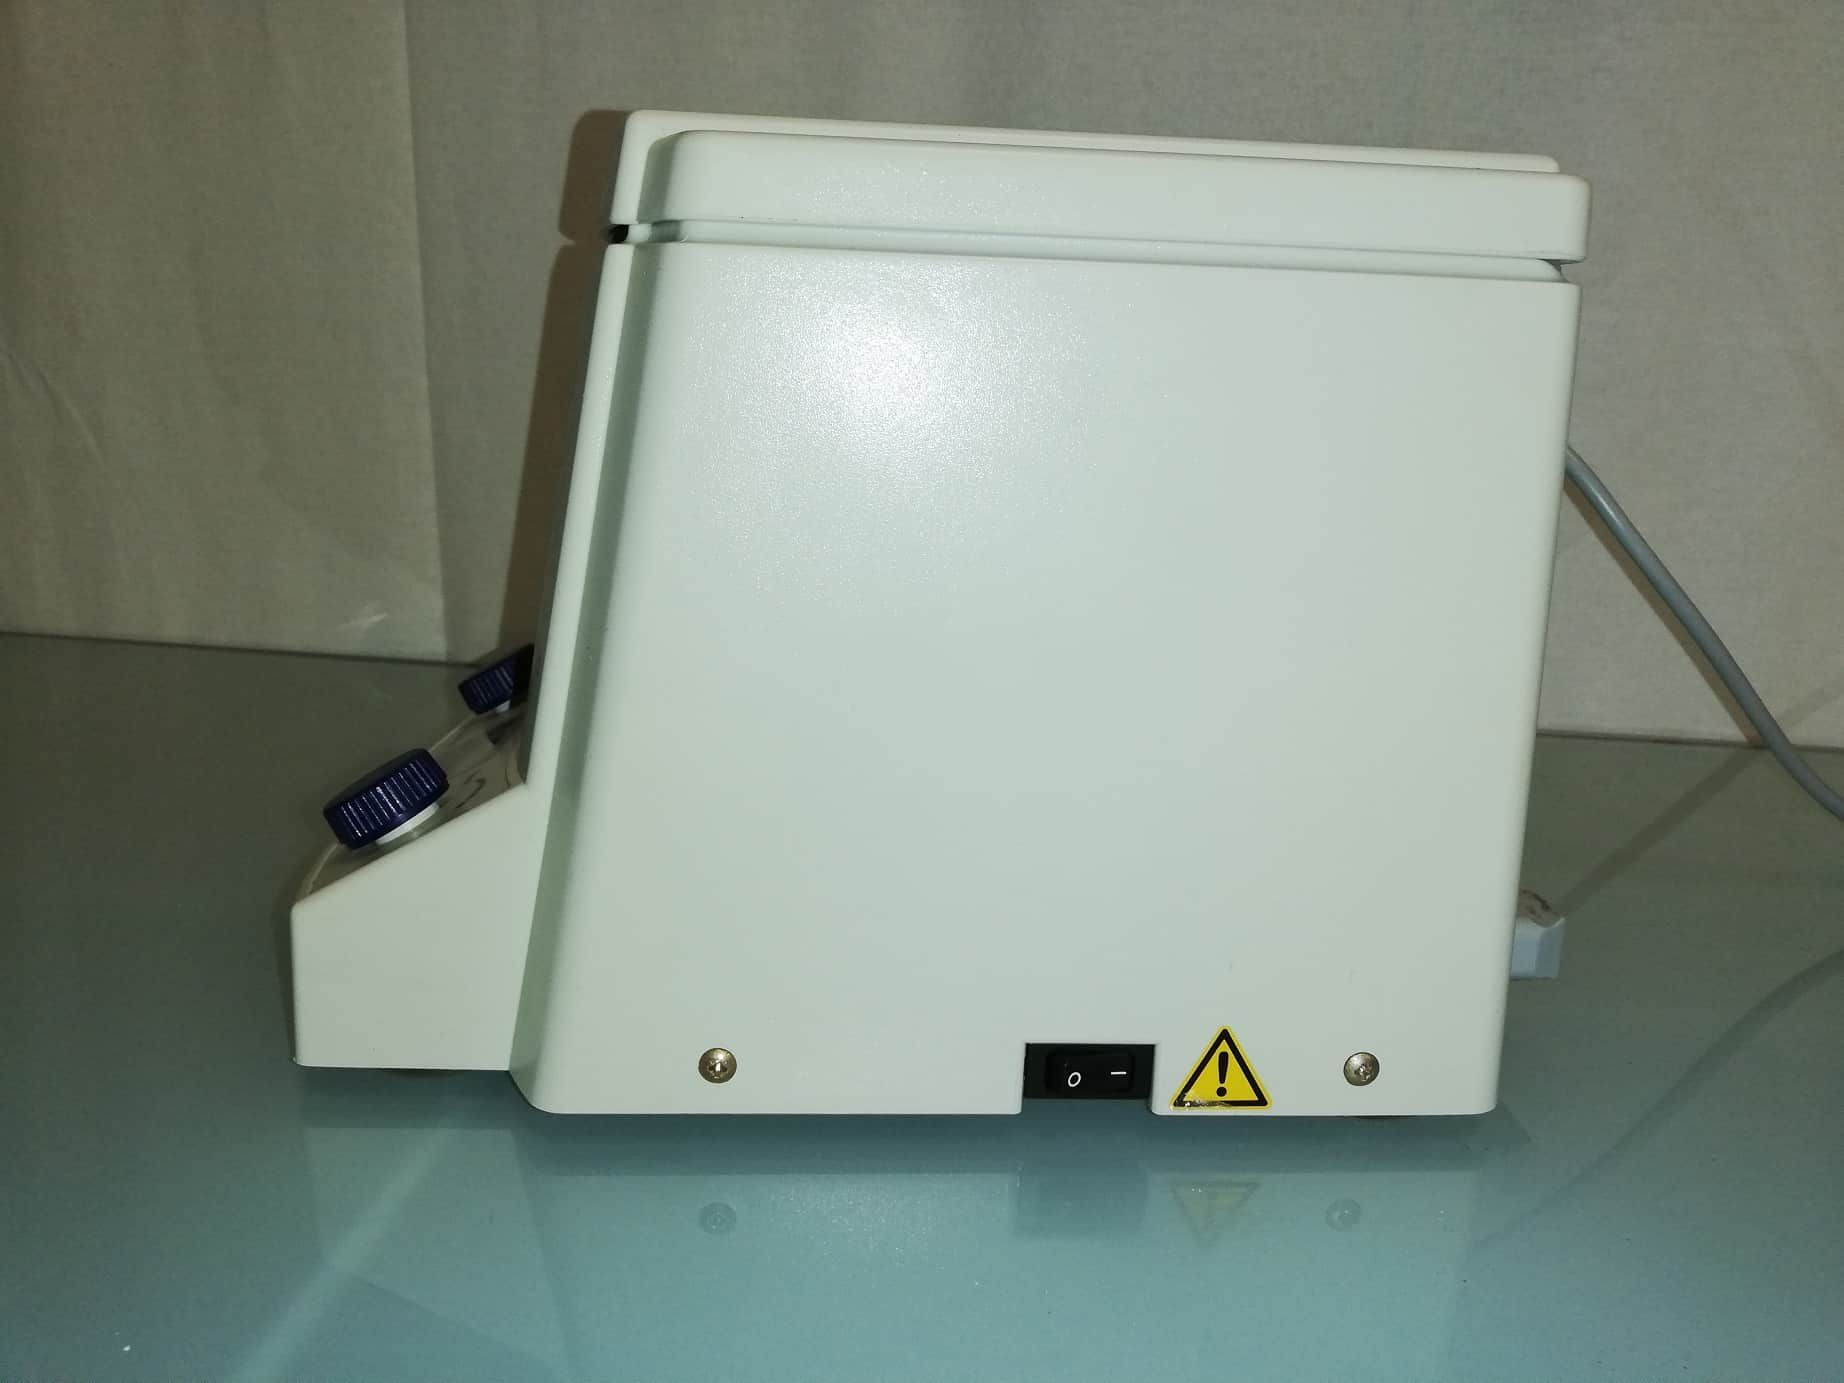 Eppendorf 5415D digital table top microfuge (centrifuge) with rotor F-45-24-11